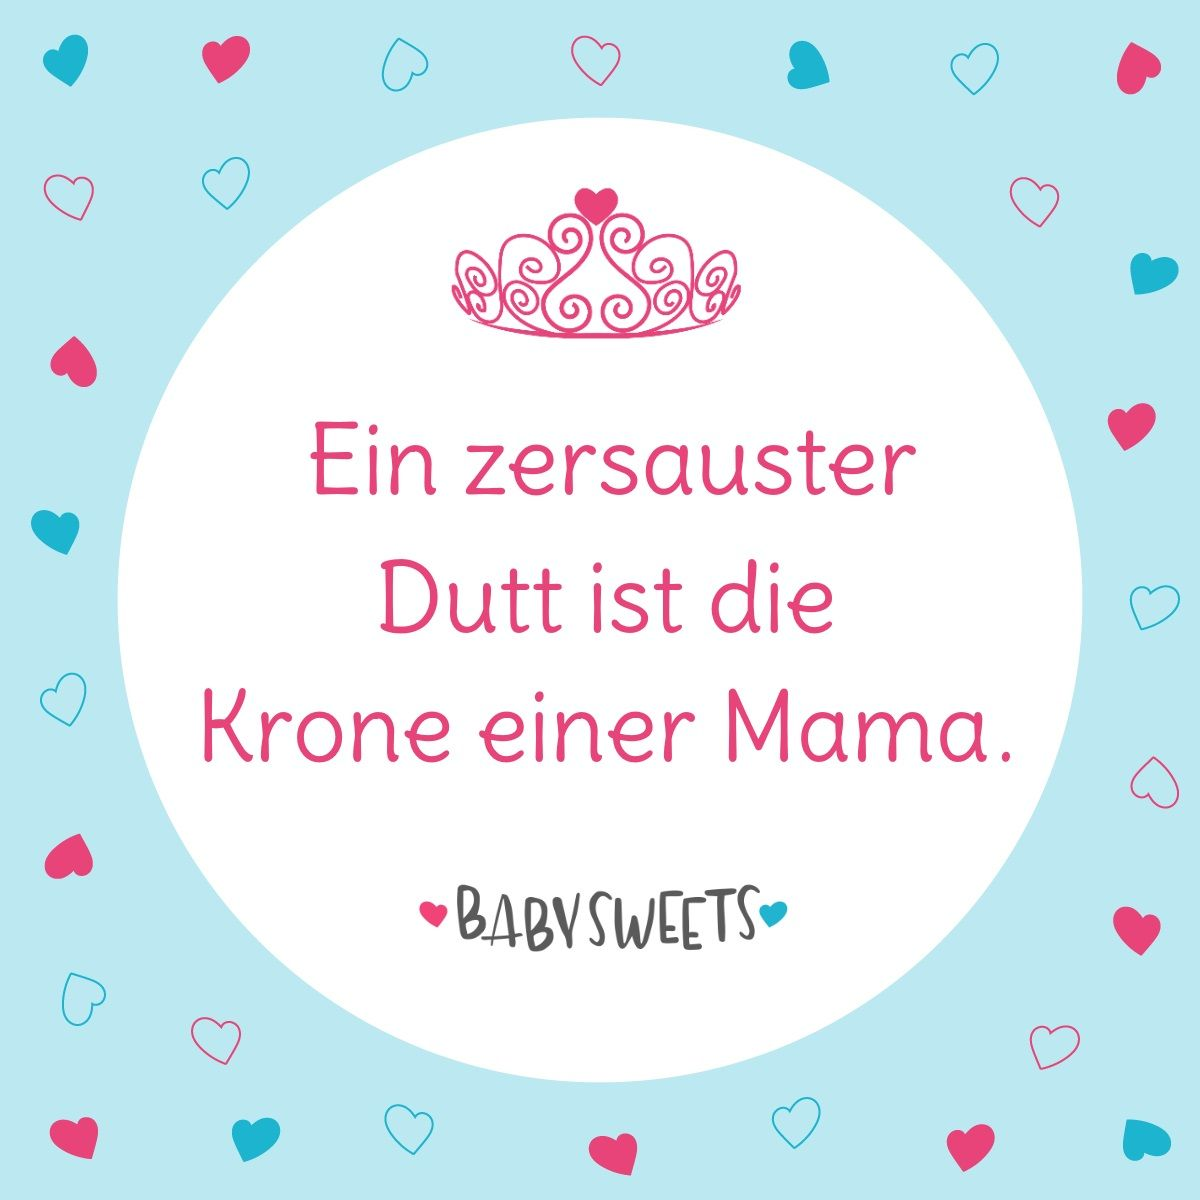 A tousled bun is a mom& Ein zersauster Dutt ist die Krone einer Mama. That& how it is, dear moms!